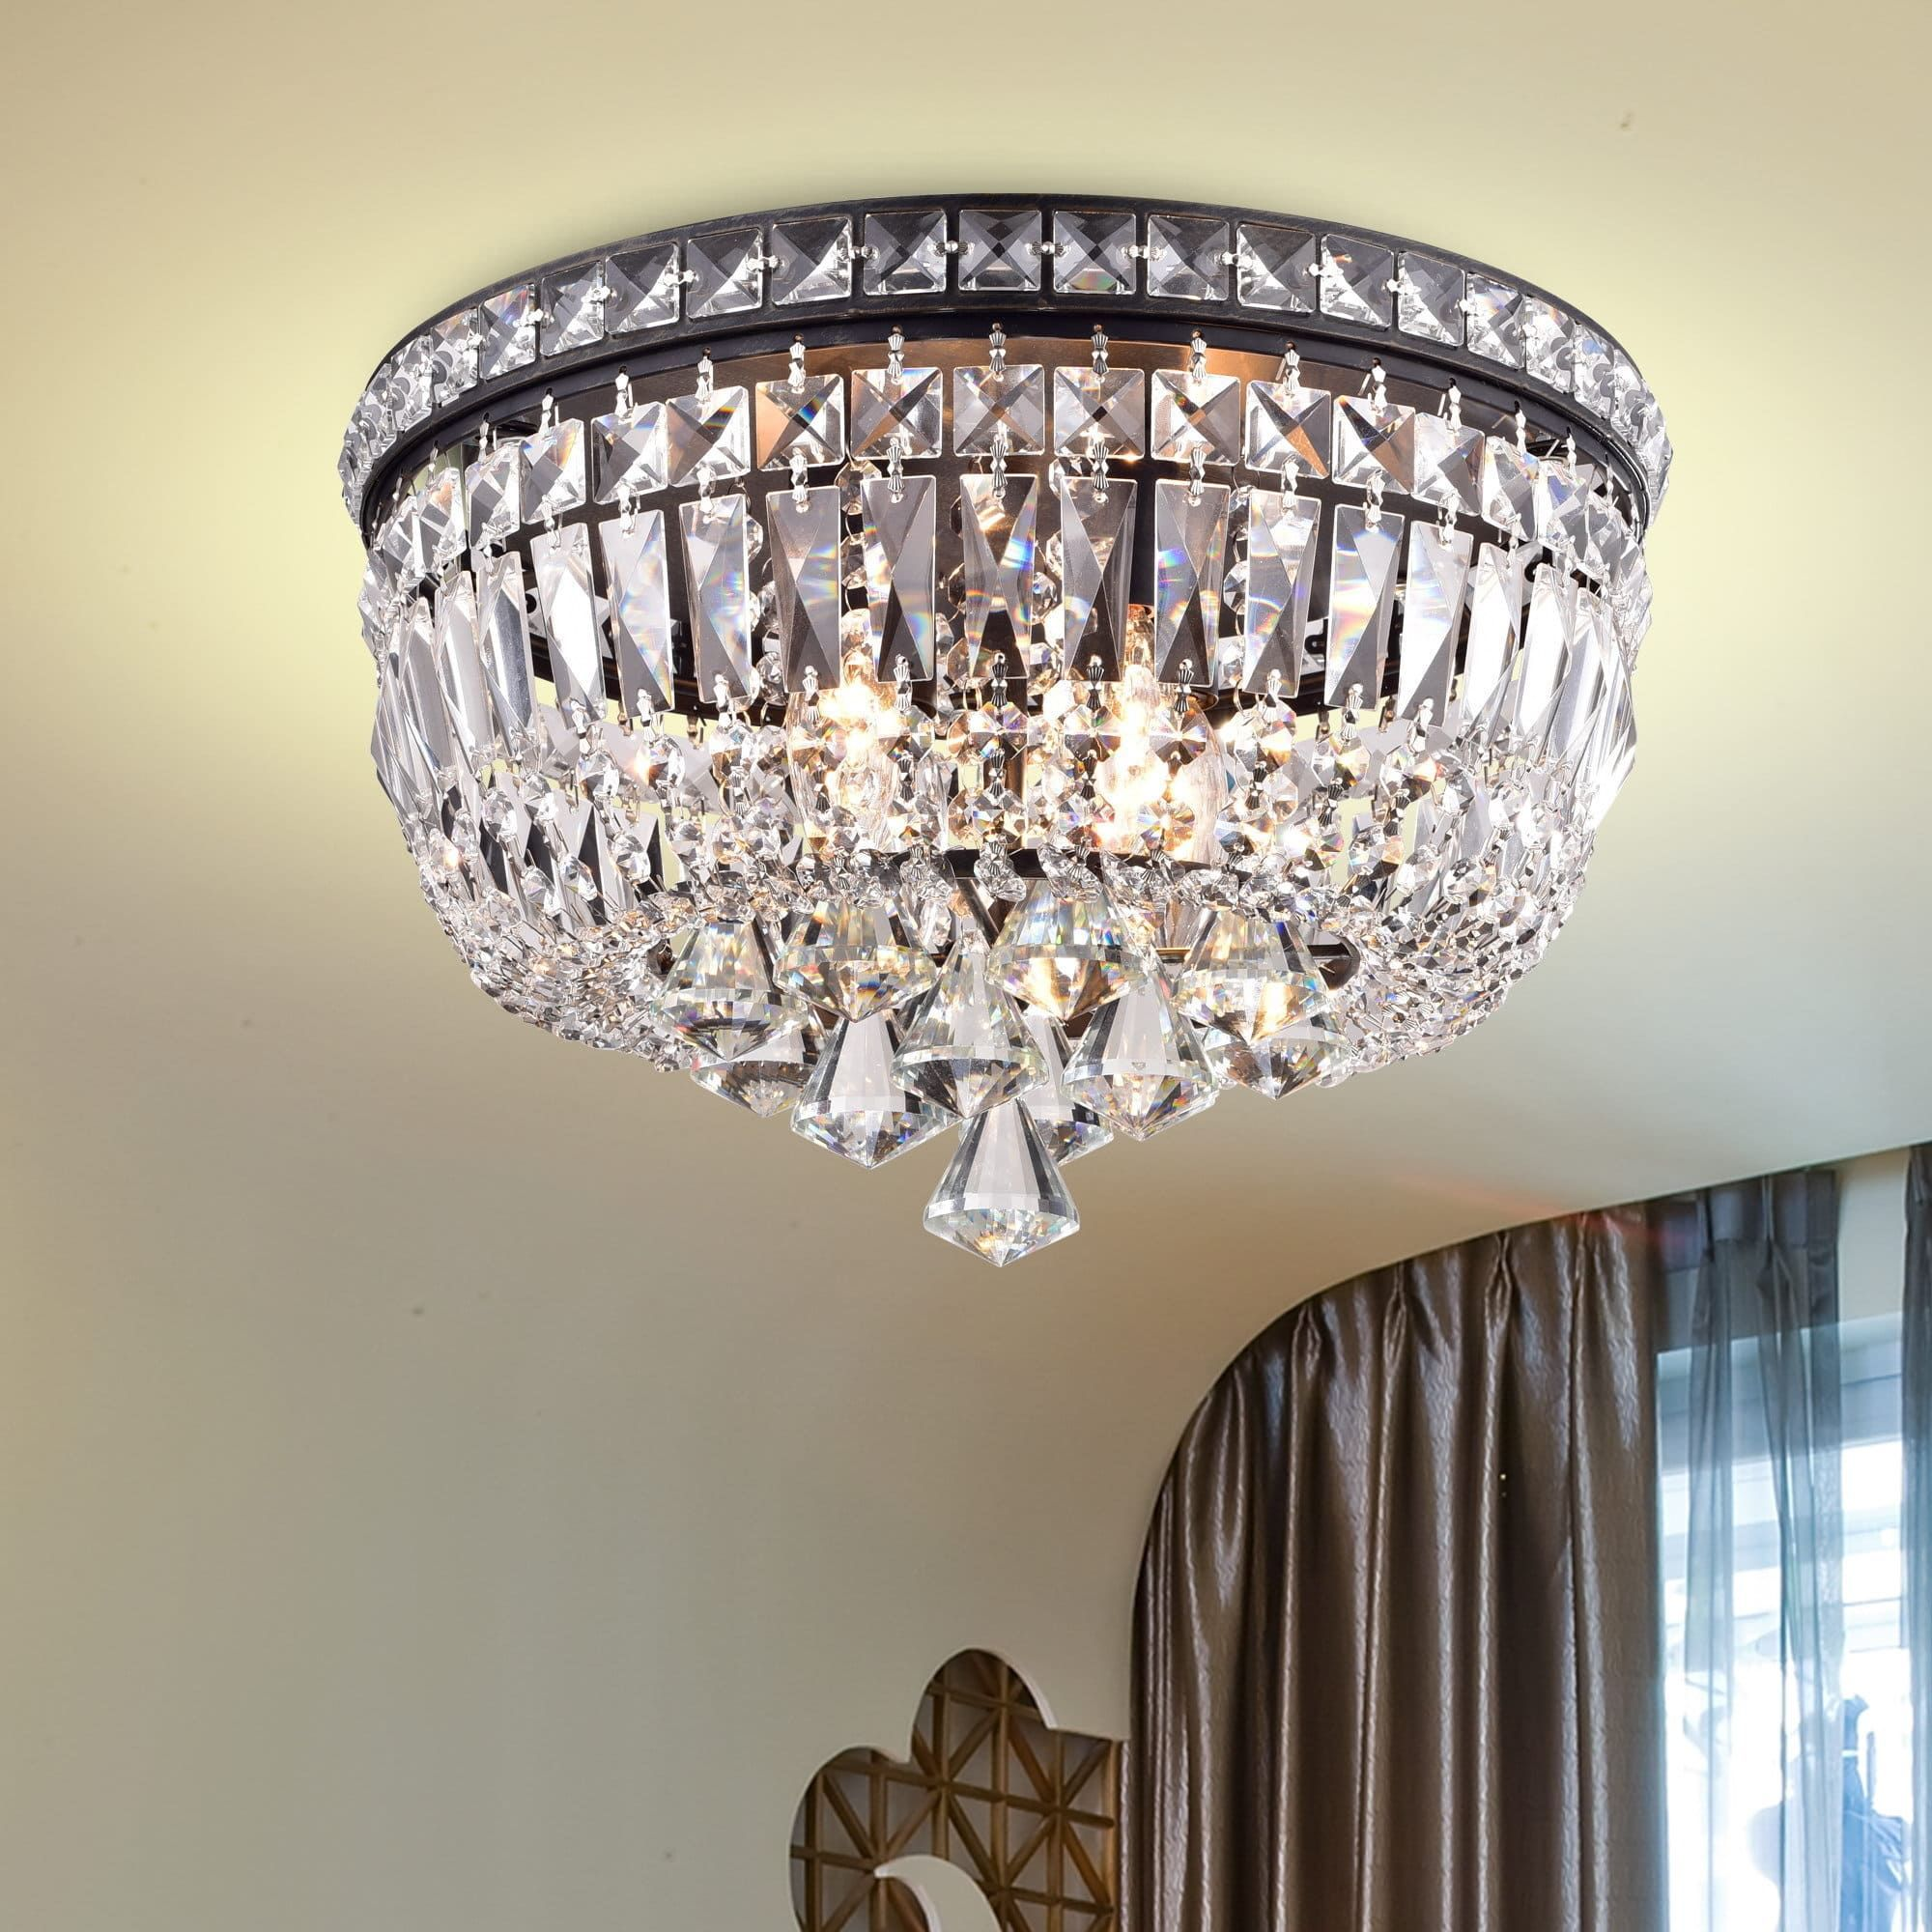 Elisa 4 light antique black and crystal flushmount chandelier elisa 4 light antique black and crystal flushmount chandelier chandeliers lights and room arubaitofo Image collections